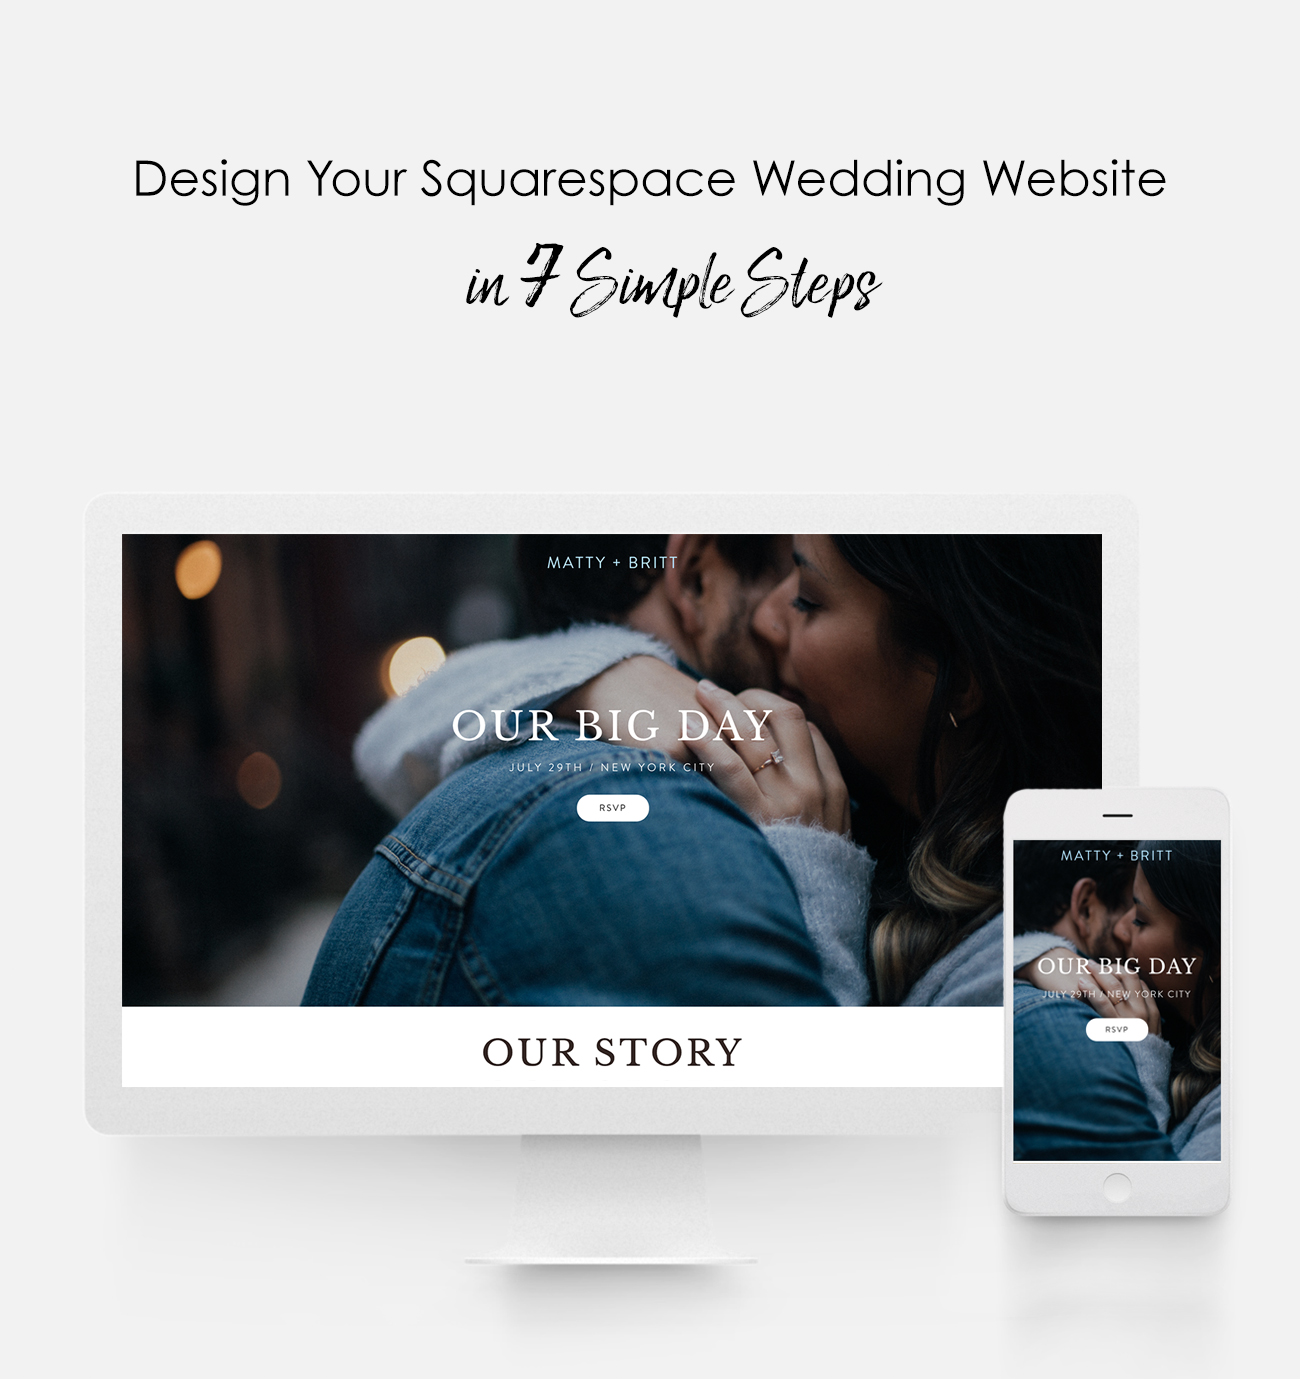 Design Your Squaree Wedding Website In 7 Simple Steps